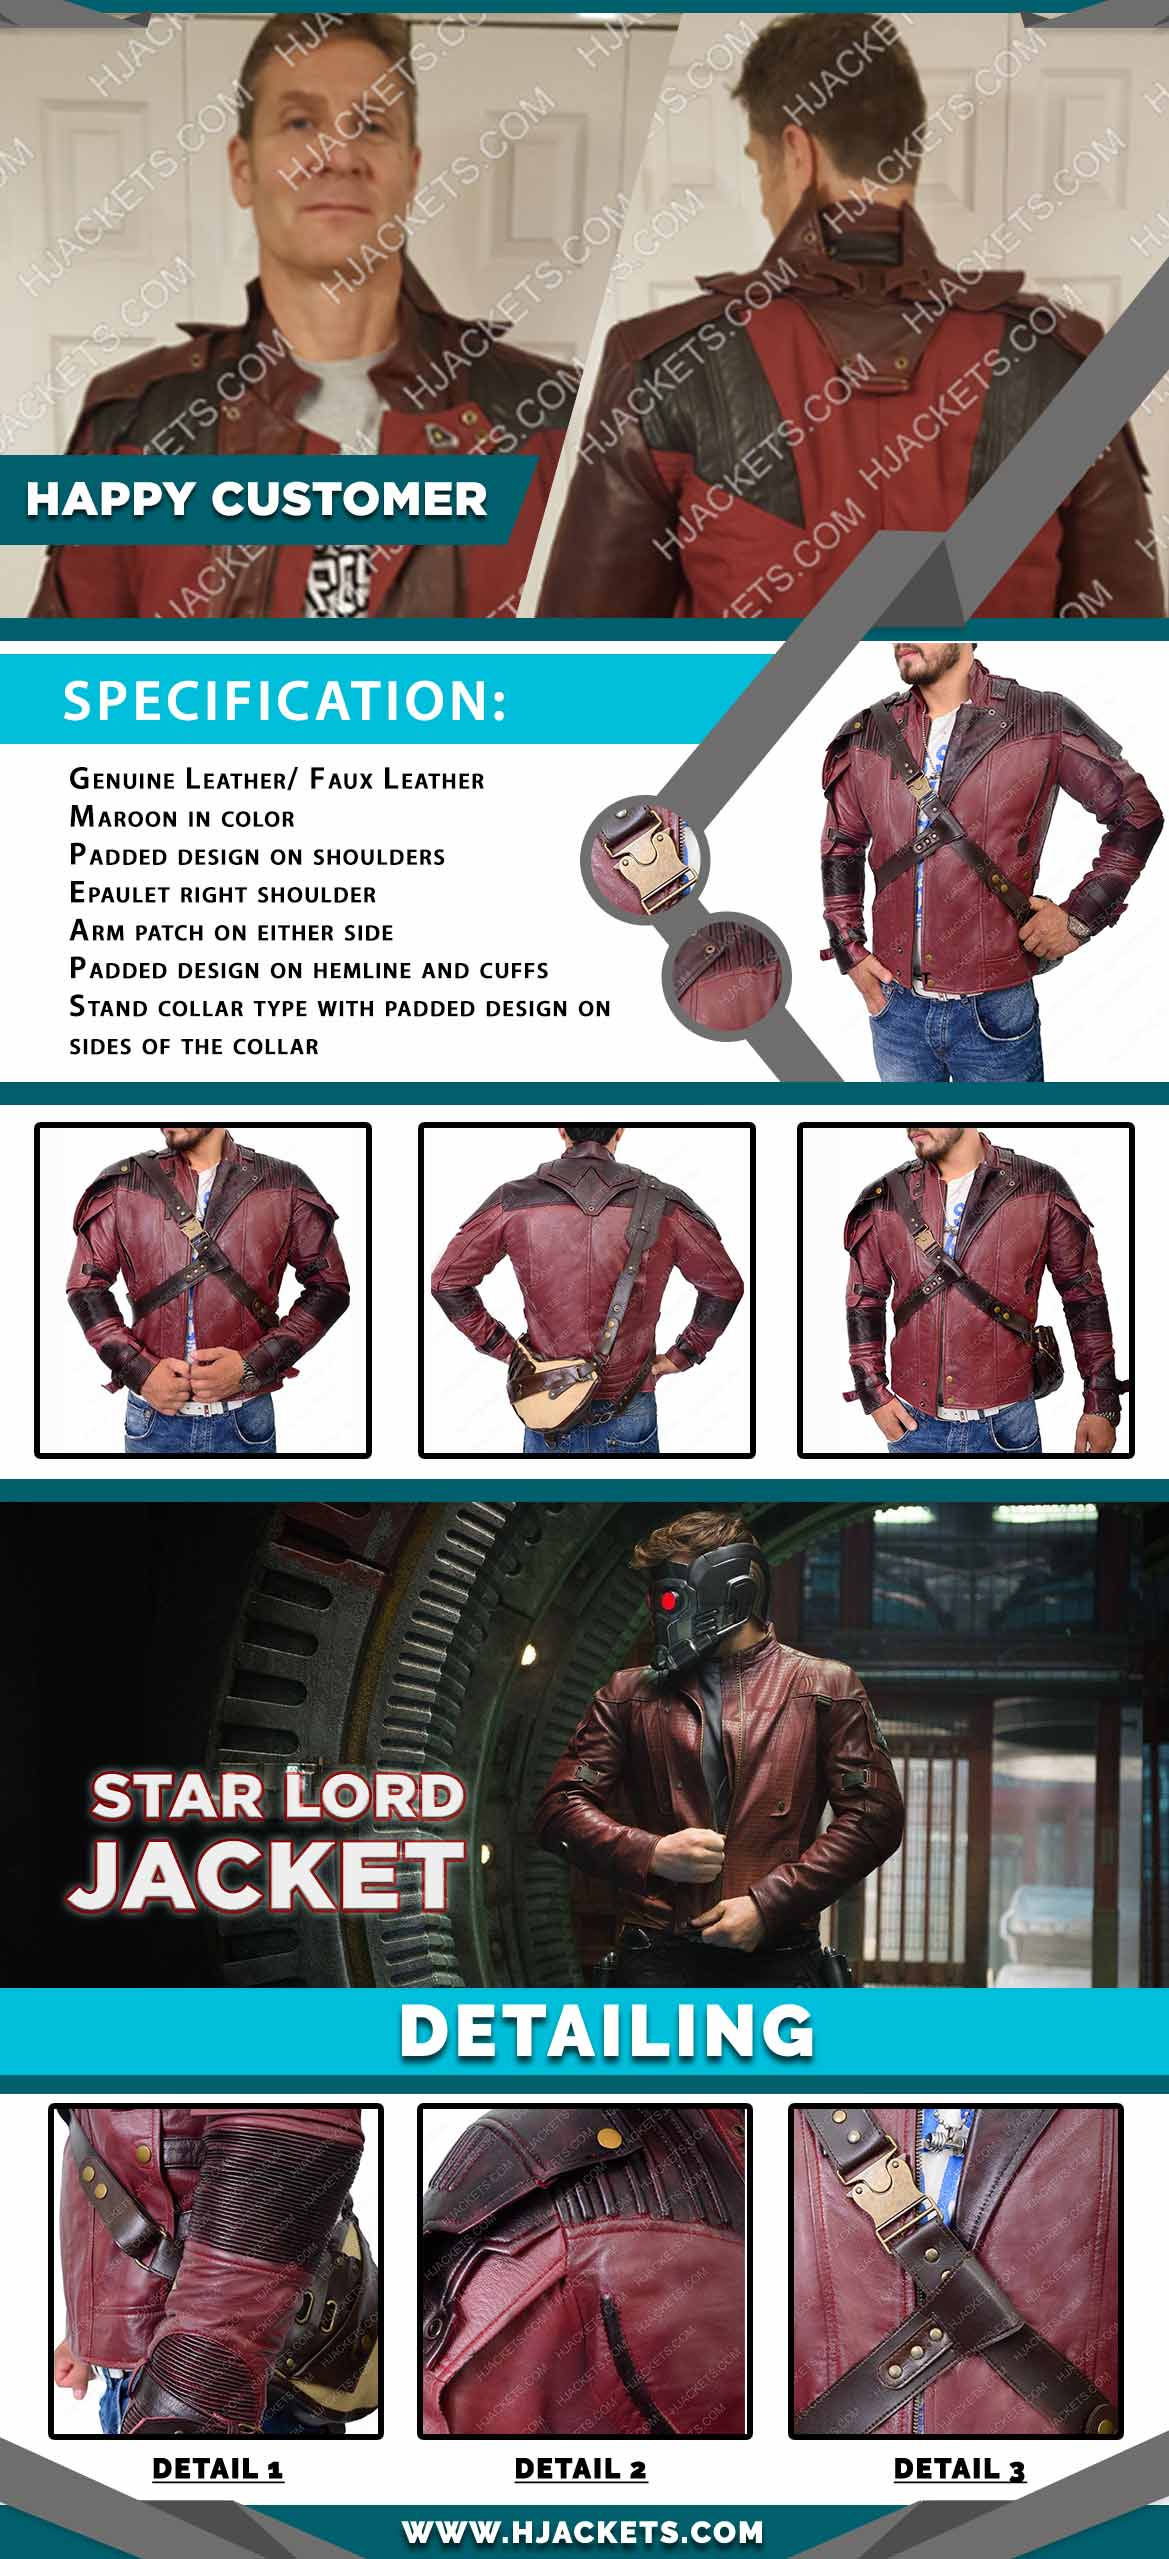 Star Lord Jacket Infographic